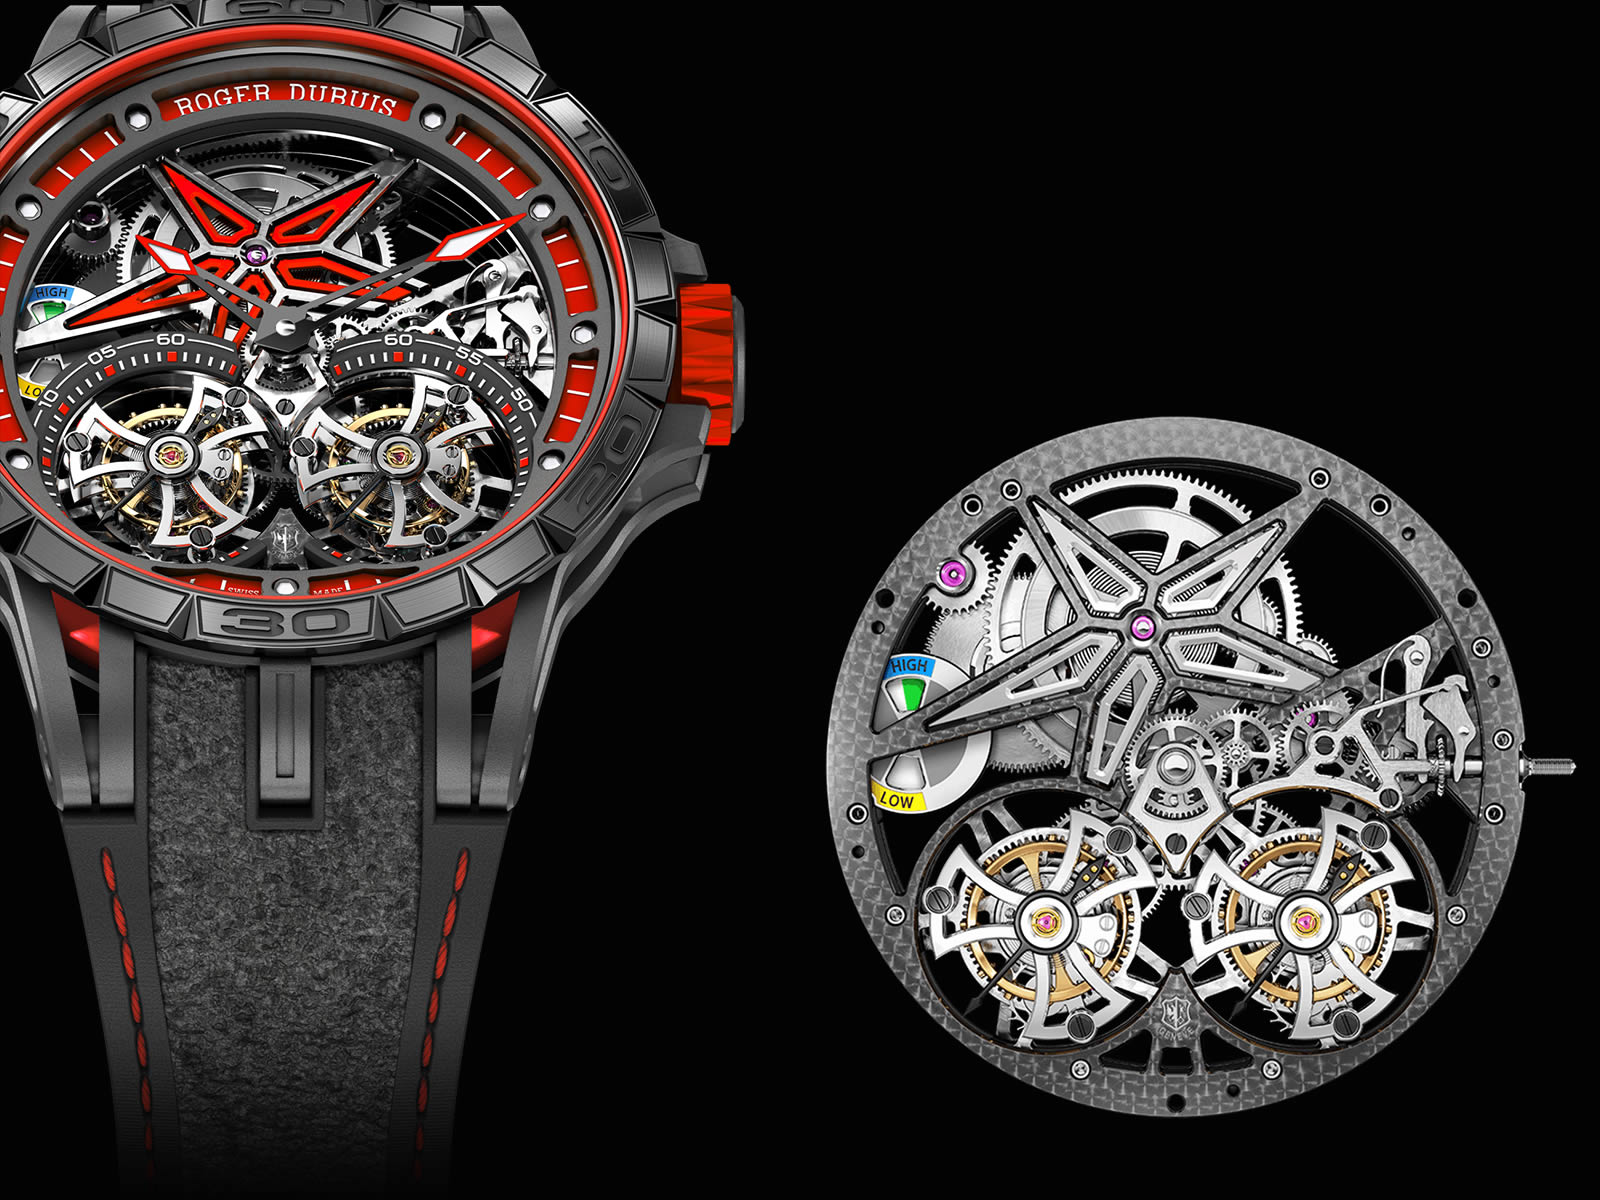 rddbex0657-roger-dubuis-excalibur-spider-pirelli-double-flying-tourbillon-4-.jpg